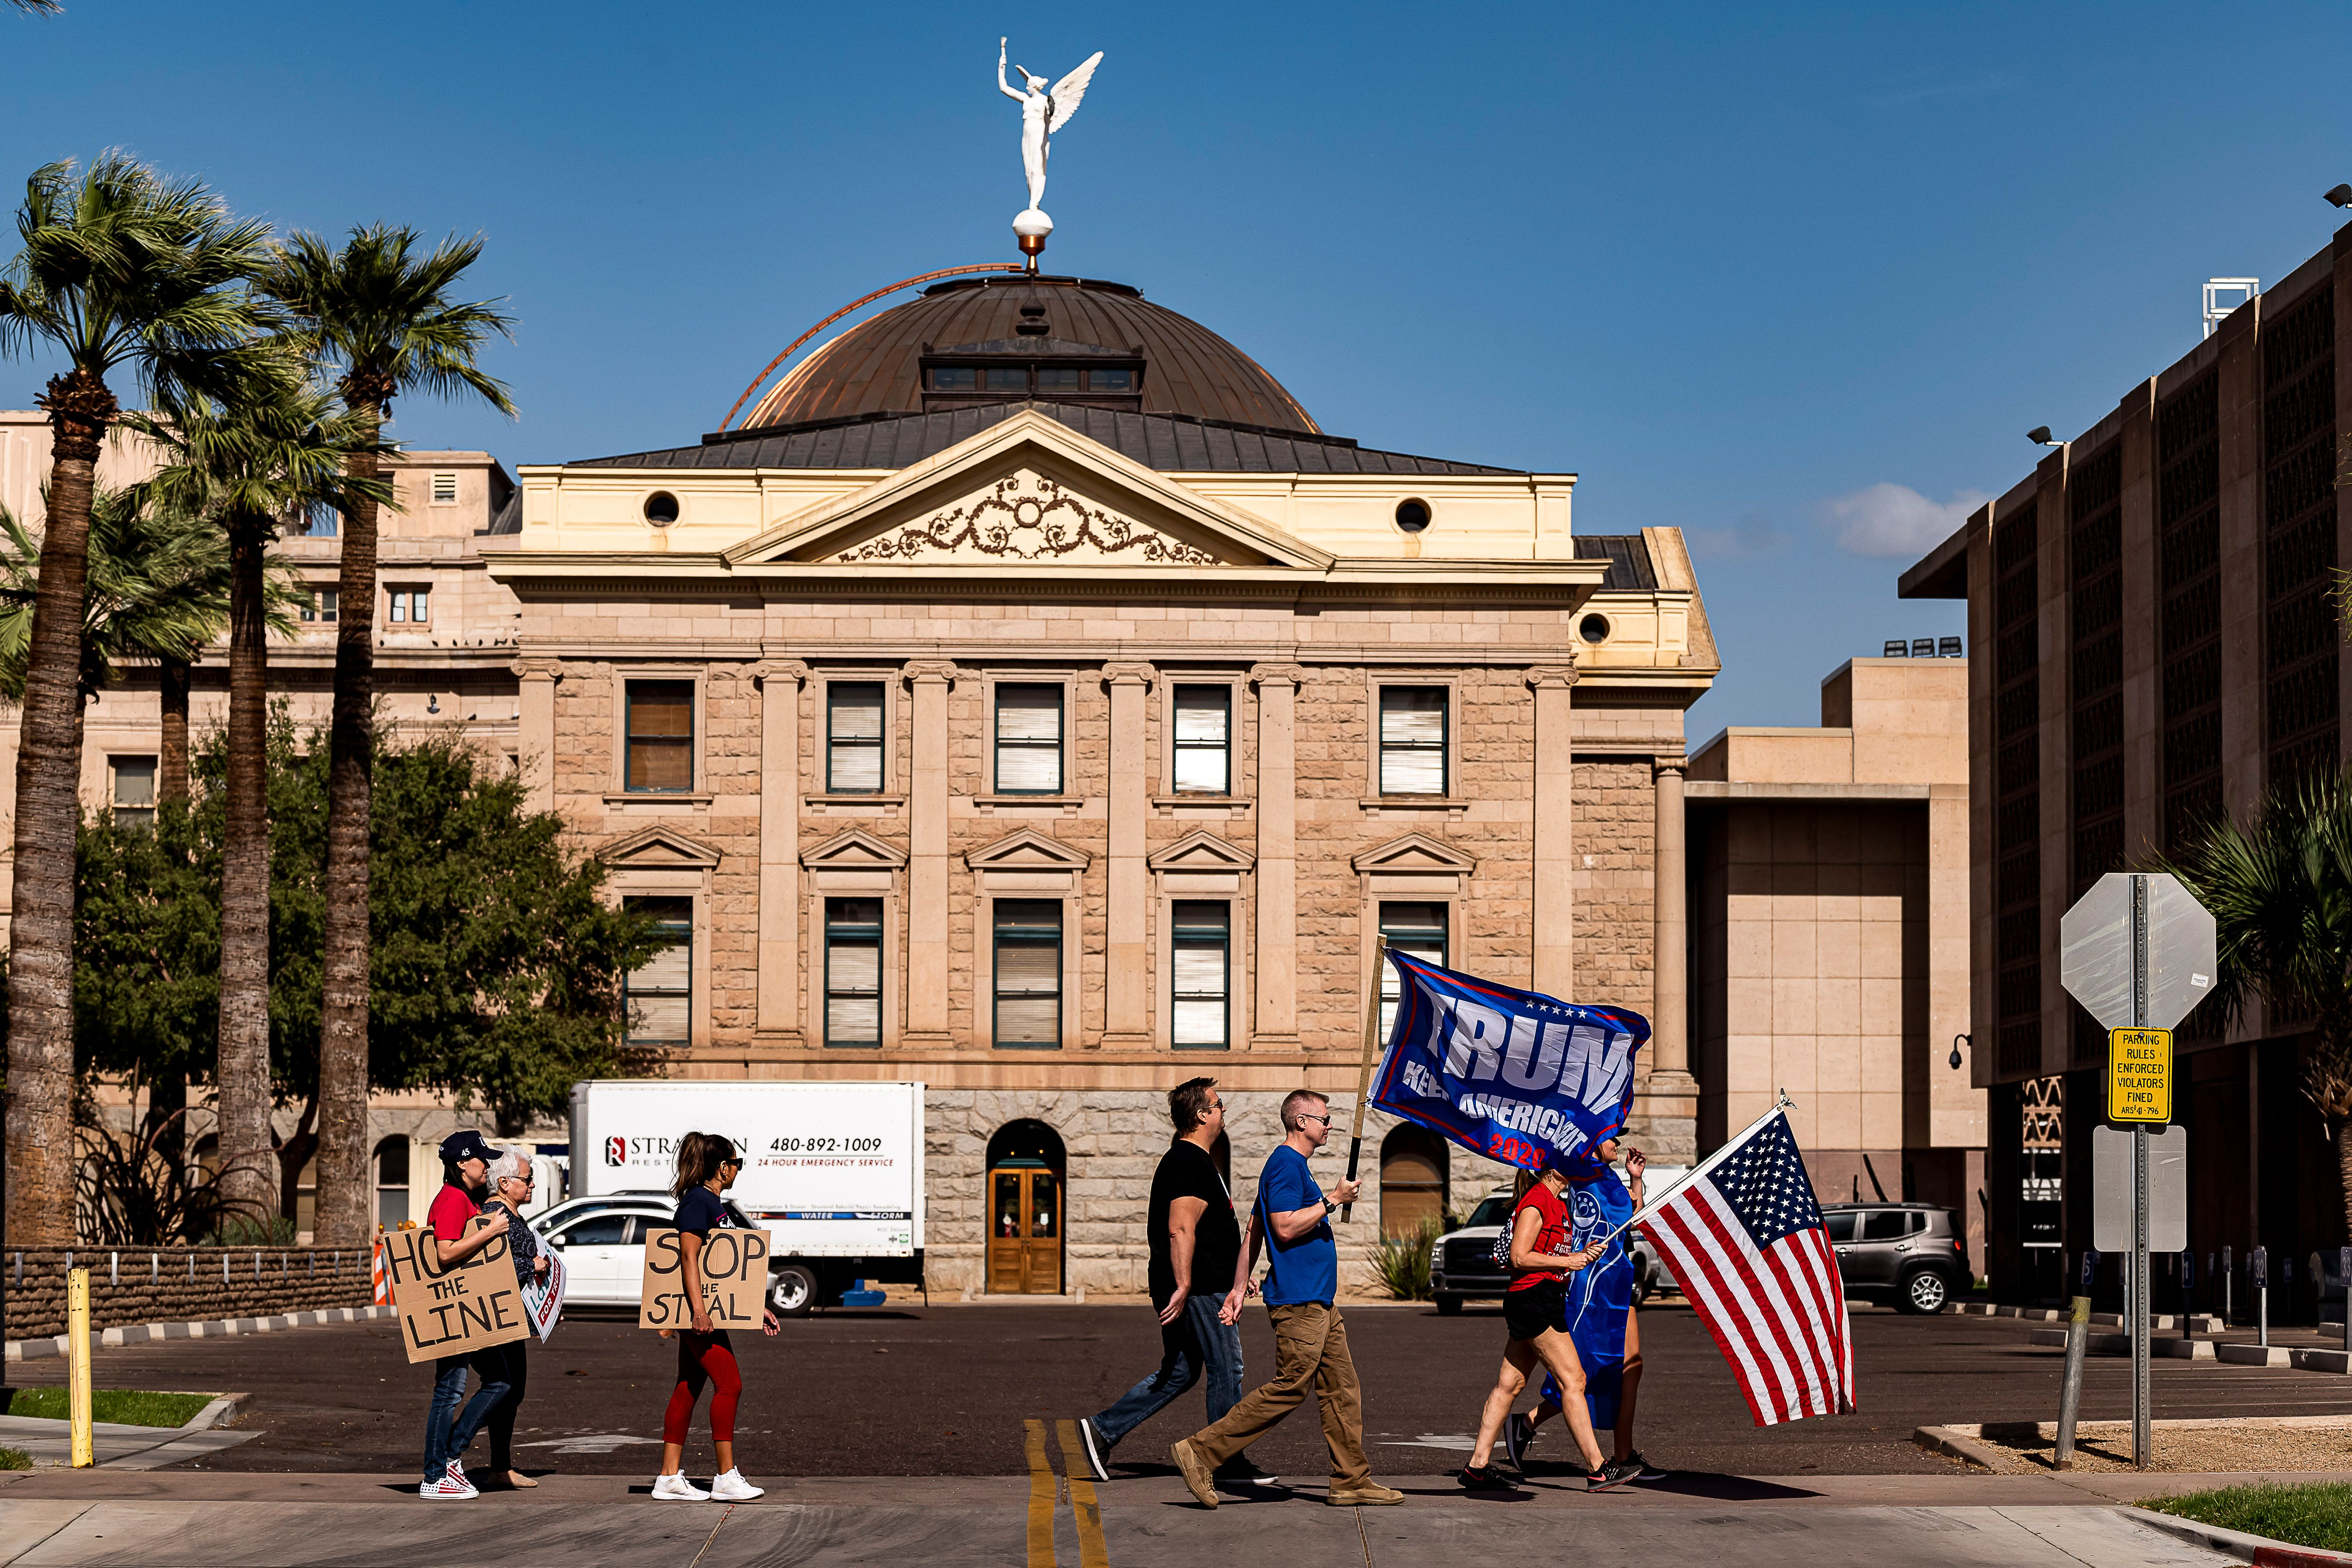 Supporters of former President Donald Trump protest in front of the Arizona State Capitol in Phoenix, Arizona, on November 7, 2020.